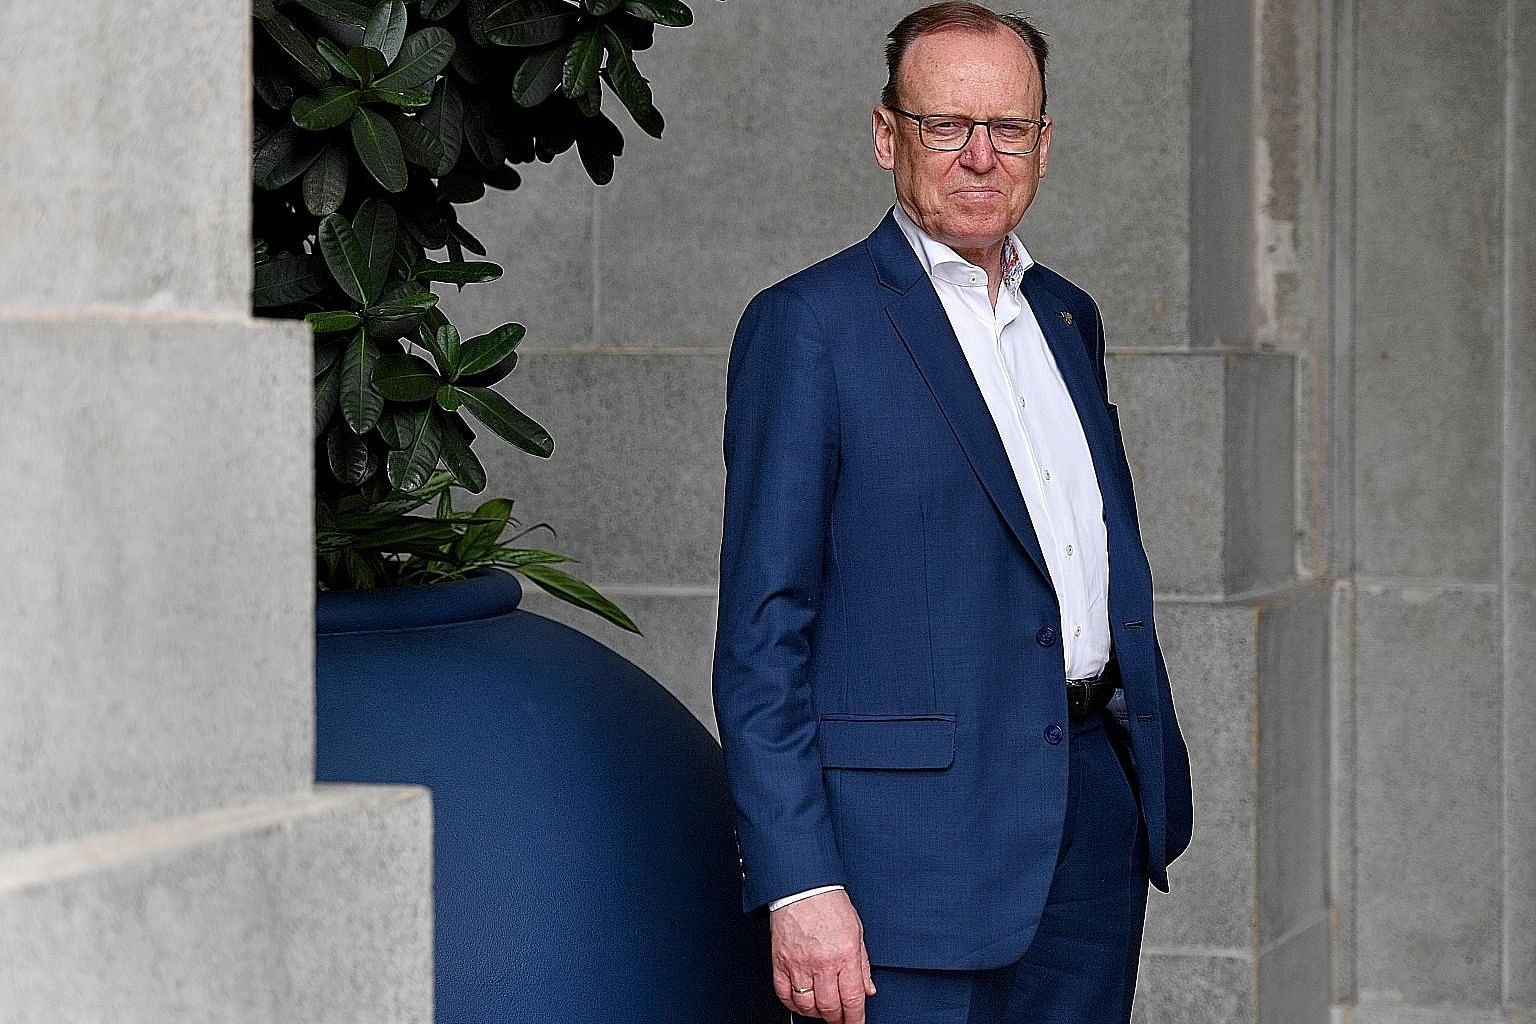 Professor Flemming Besenbacher wears two hats, as a renowned nanoscientist and as chairman of the supervisory board of Carlsberg Group, a situation that results from a 19th century decision by the Danish beer giant's founder J.C. Jacobsen about how t